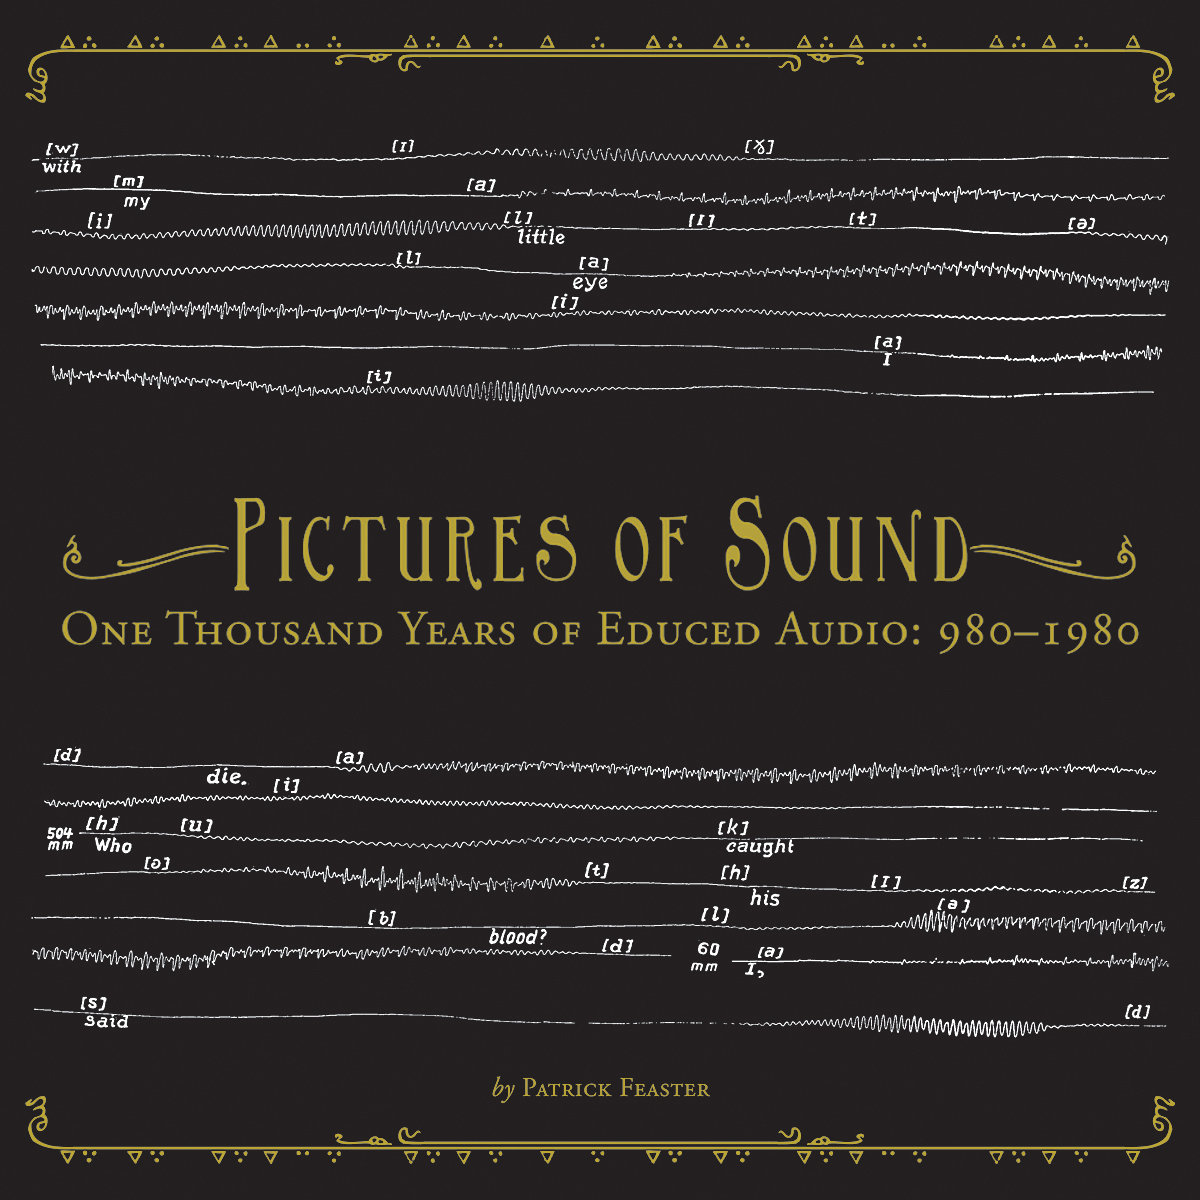 Pictures Of Sound: One Thousand Years Of Educed Audio: 980-1980  Release Date: November 6, 2012 Label: Dust-to-Digital  SERVICE: Mastering NUMBER OF DISCS: 1 GENRE: Historical FORMAT: CD